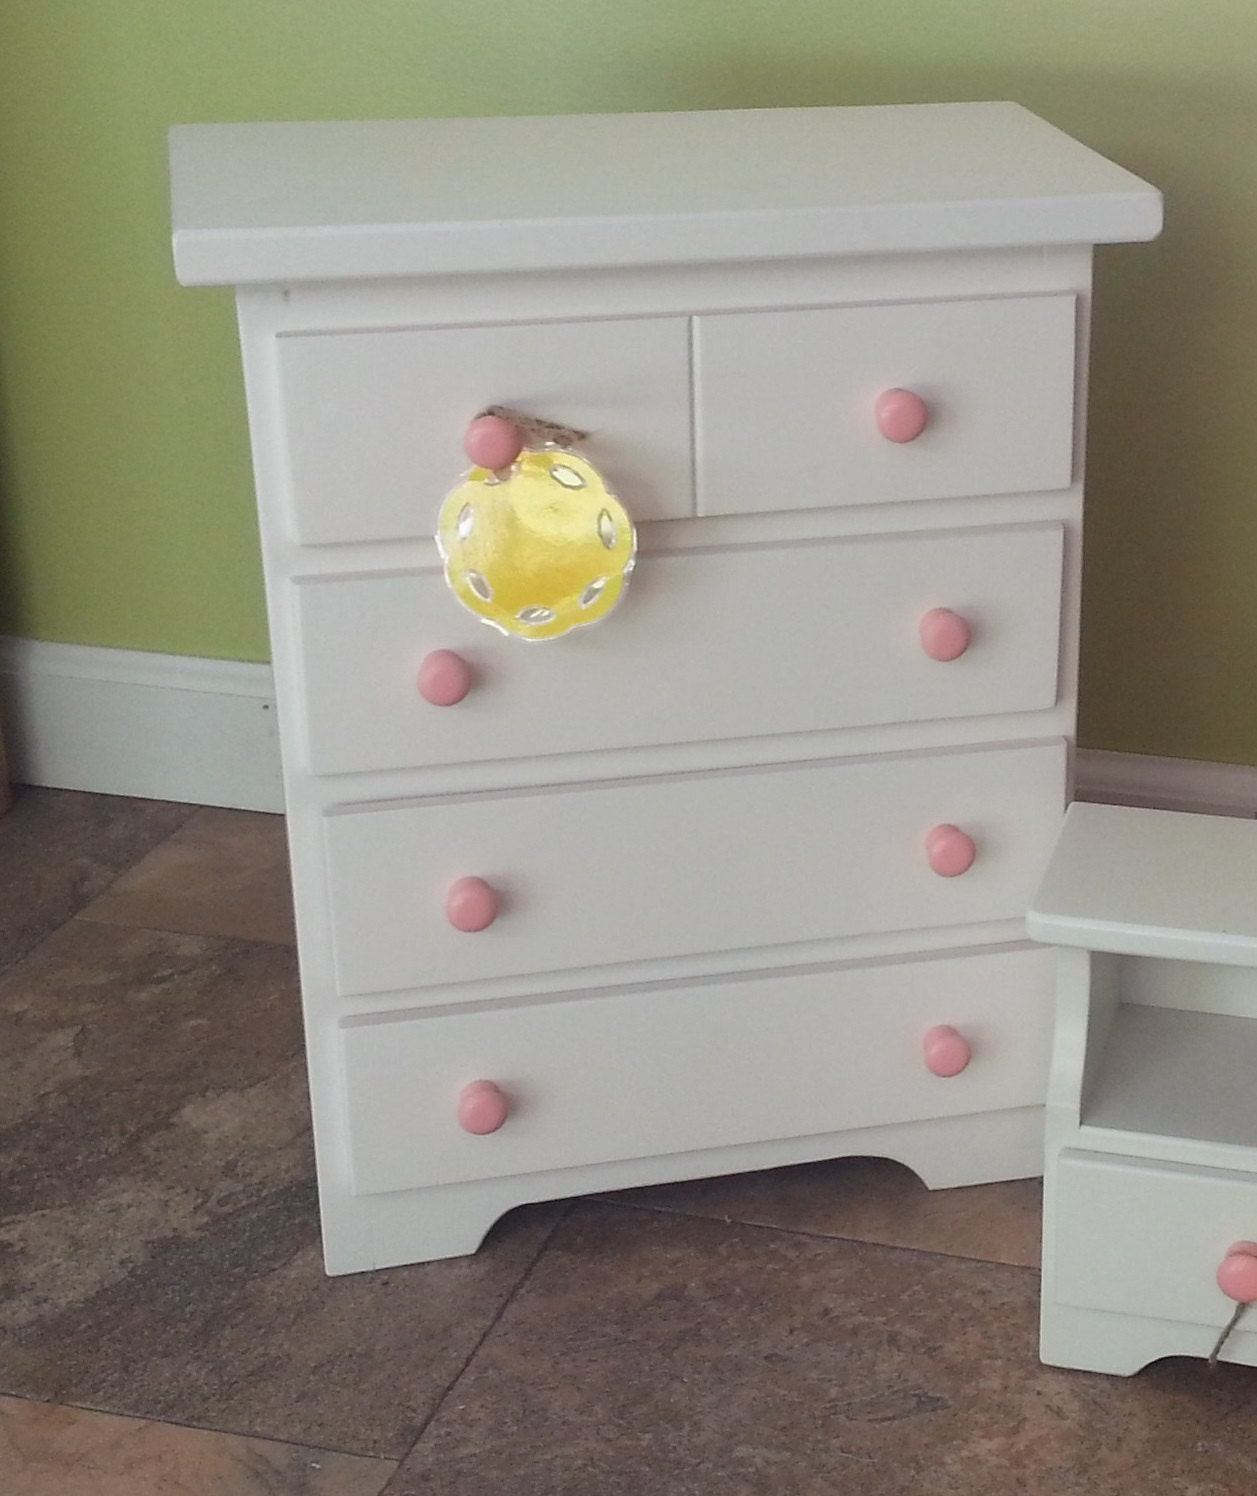 Doll Clothes Dresser Wooden Toy Furniture By Alaratessalexbres